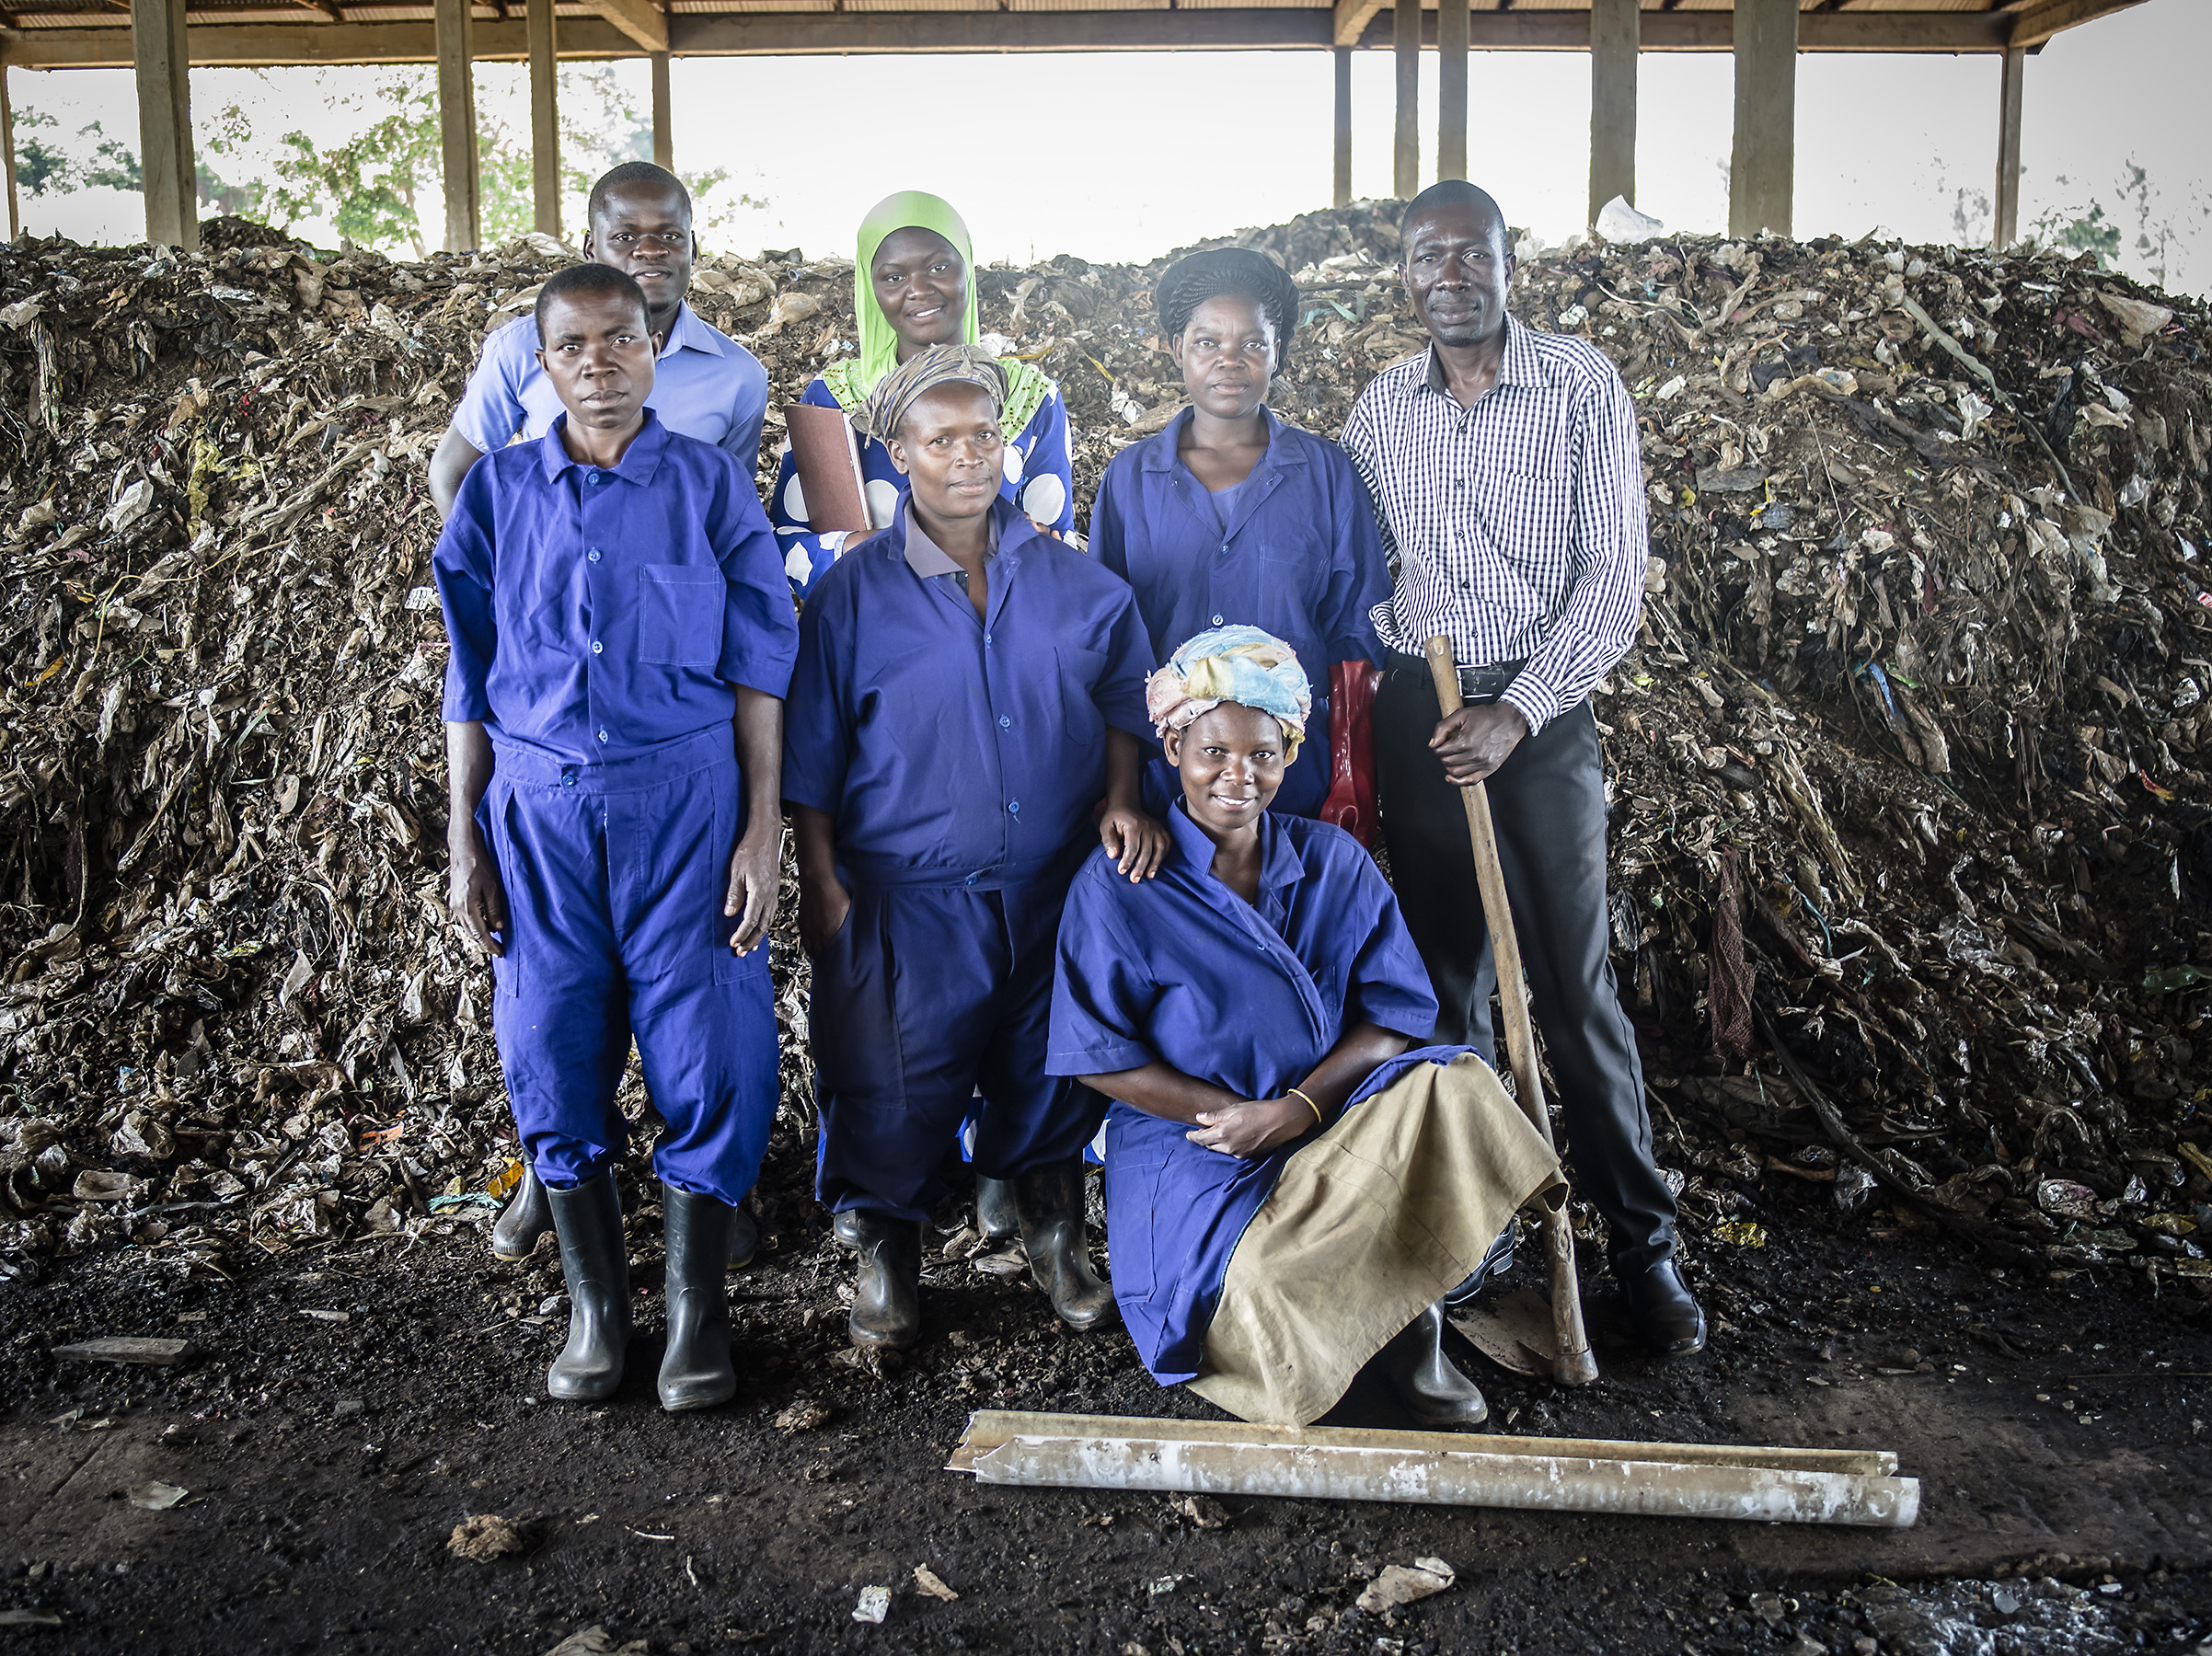 Contractors and workers pose together from the Jinja dumpsite.